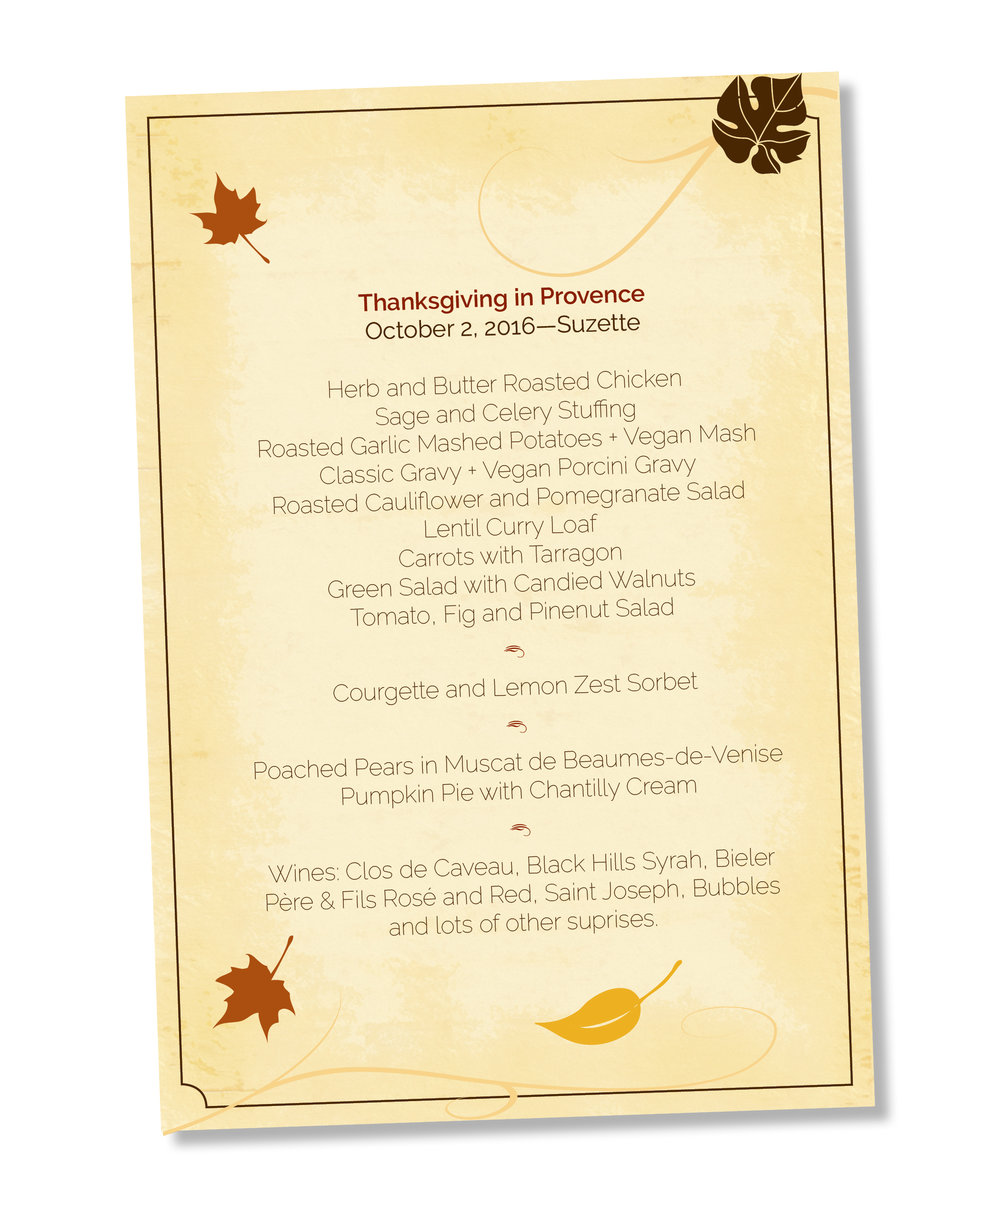 Le menu Thanksgiving in Provence